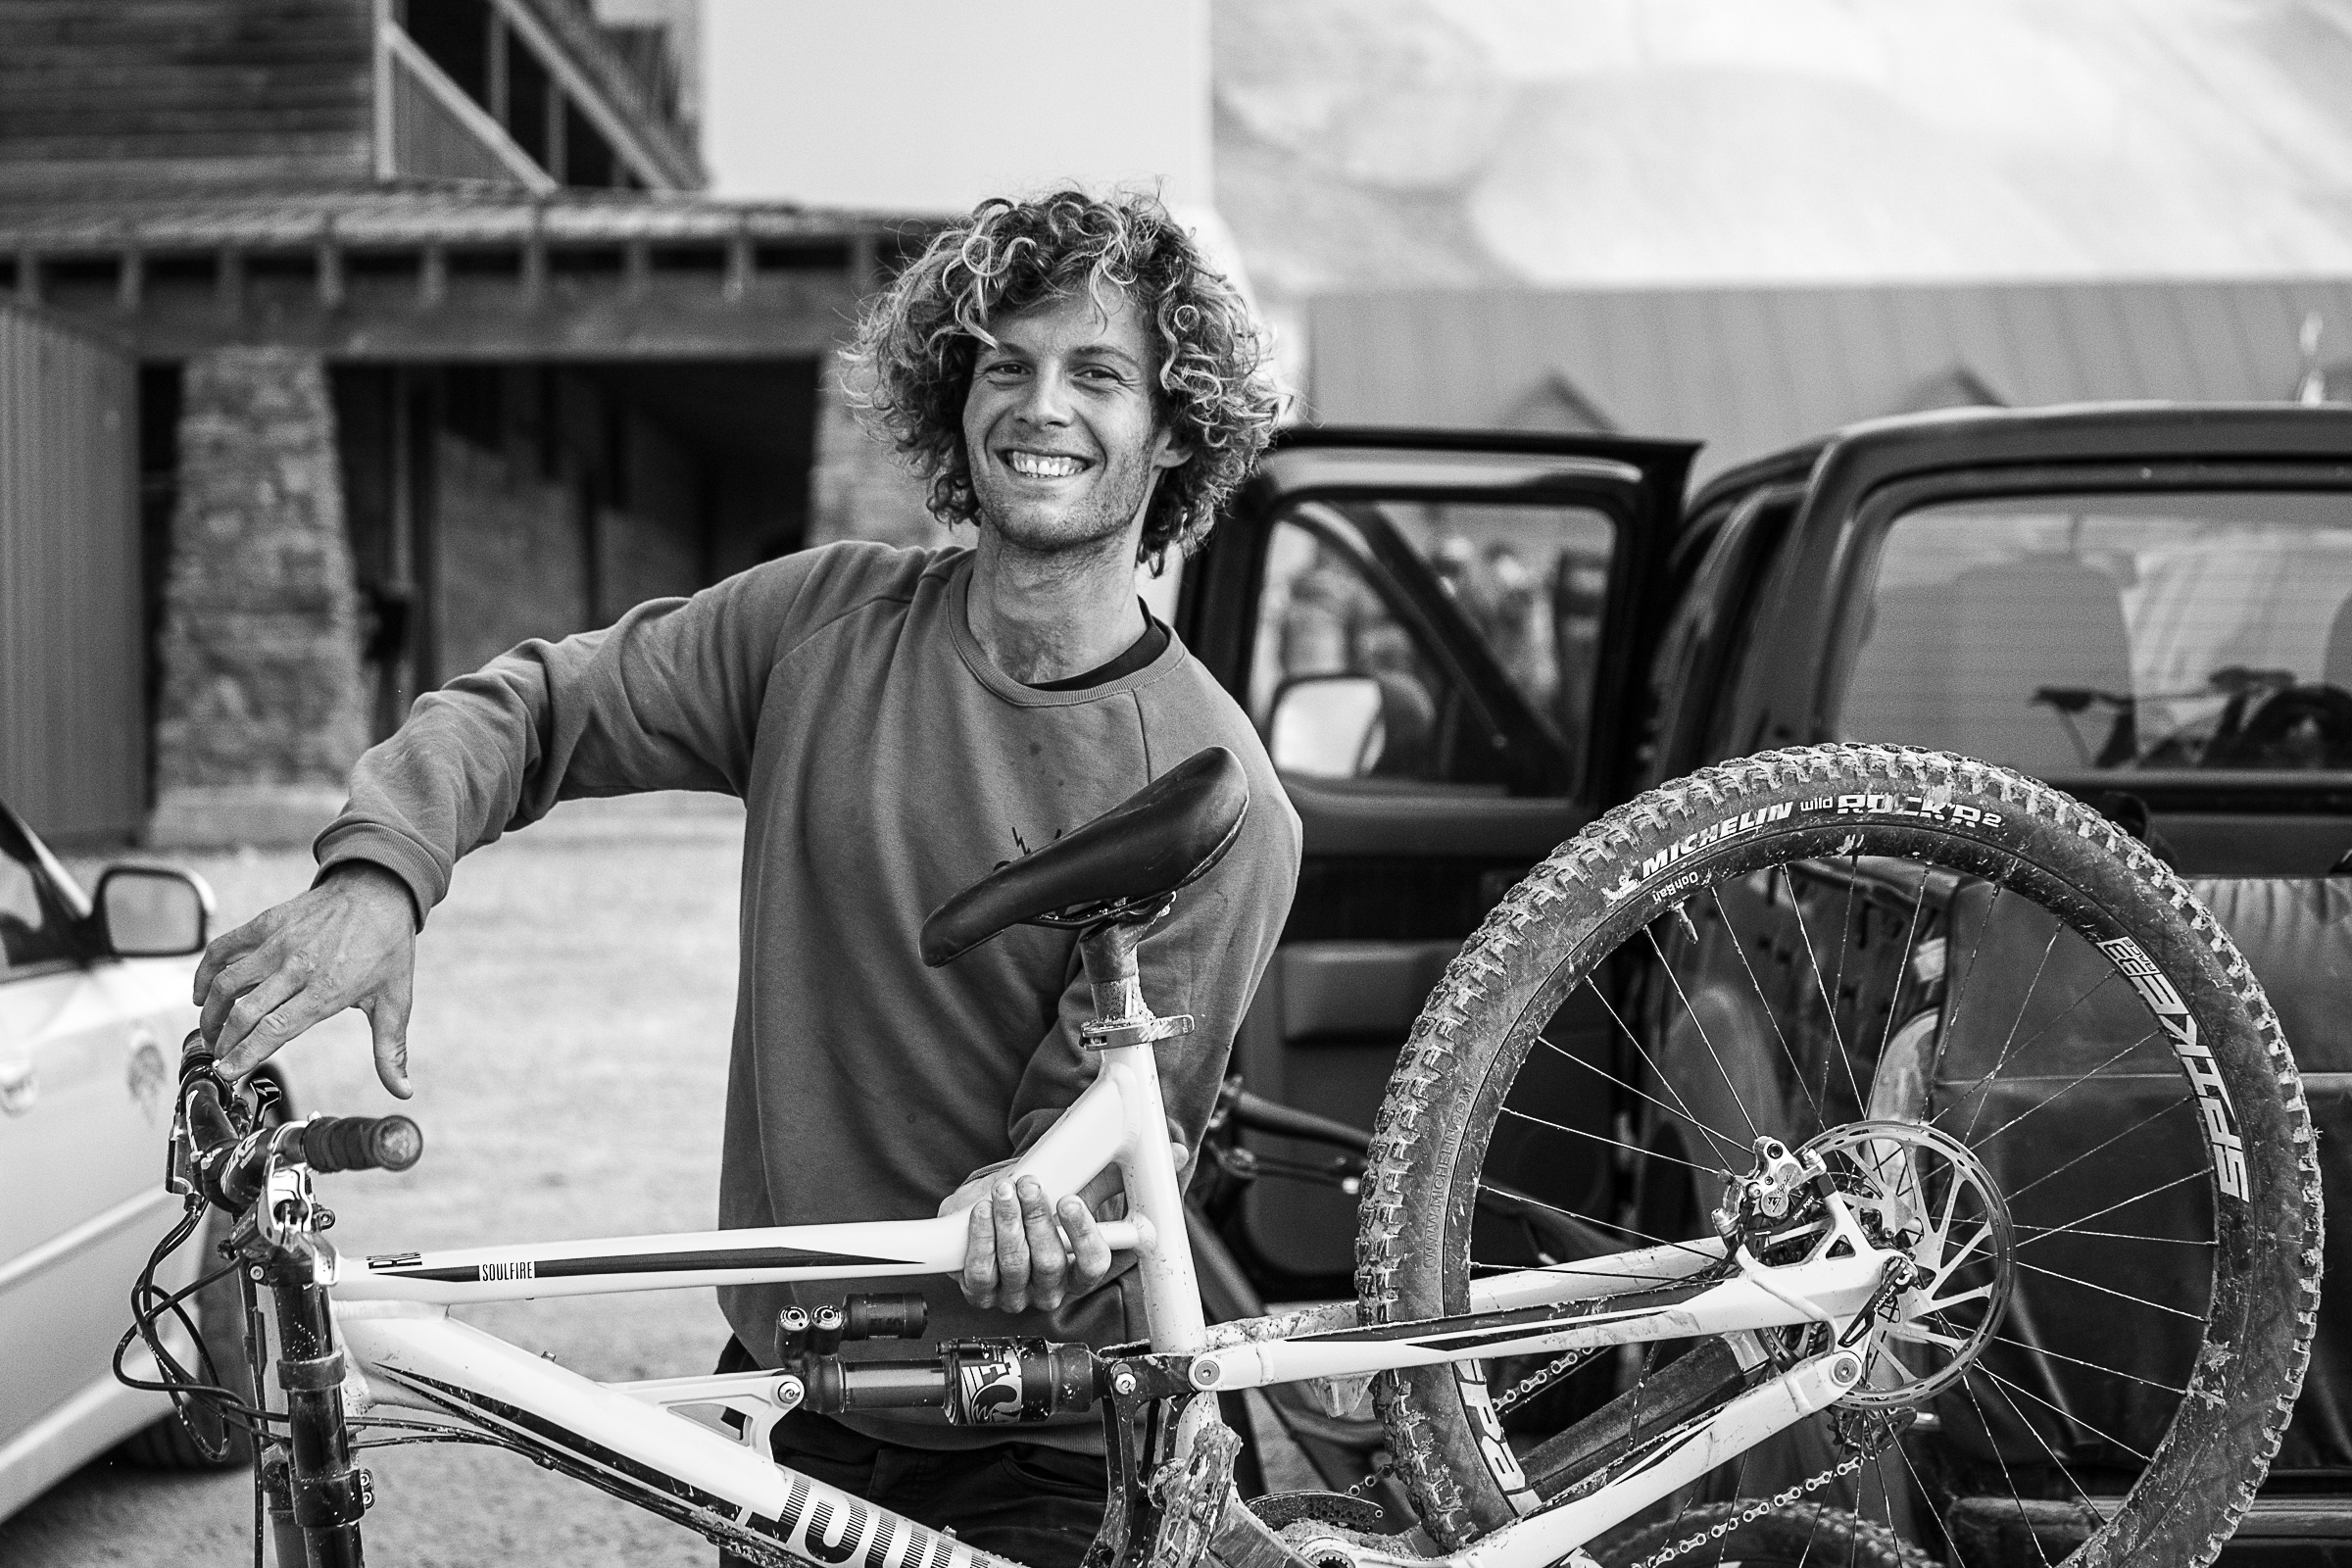 Antoine Bizet making the most of his time in NZ